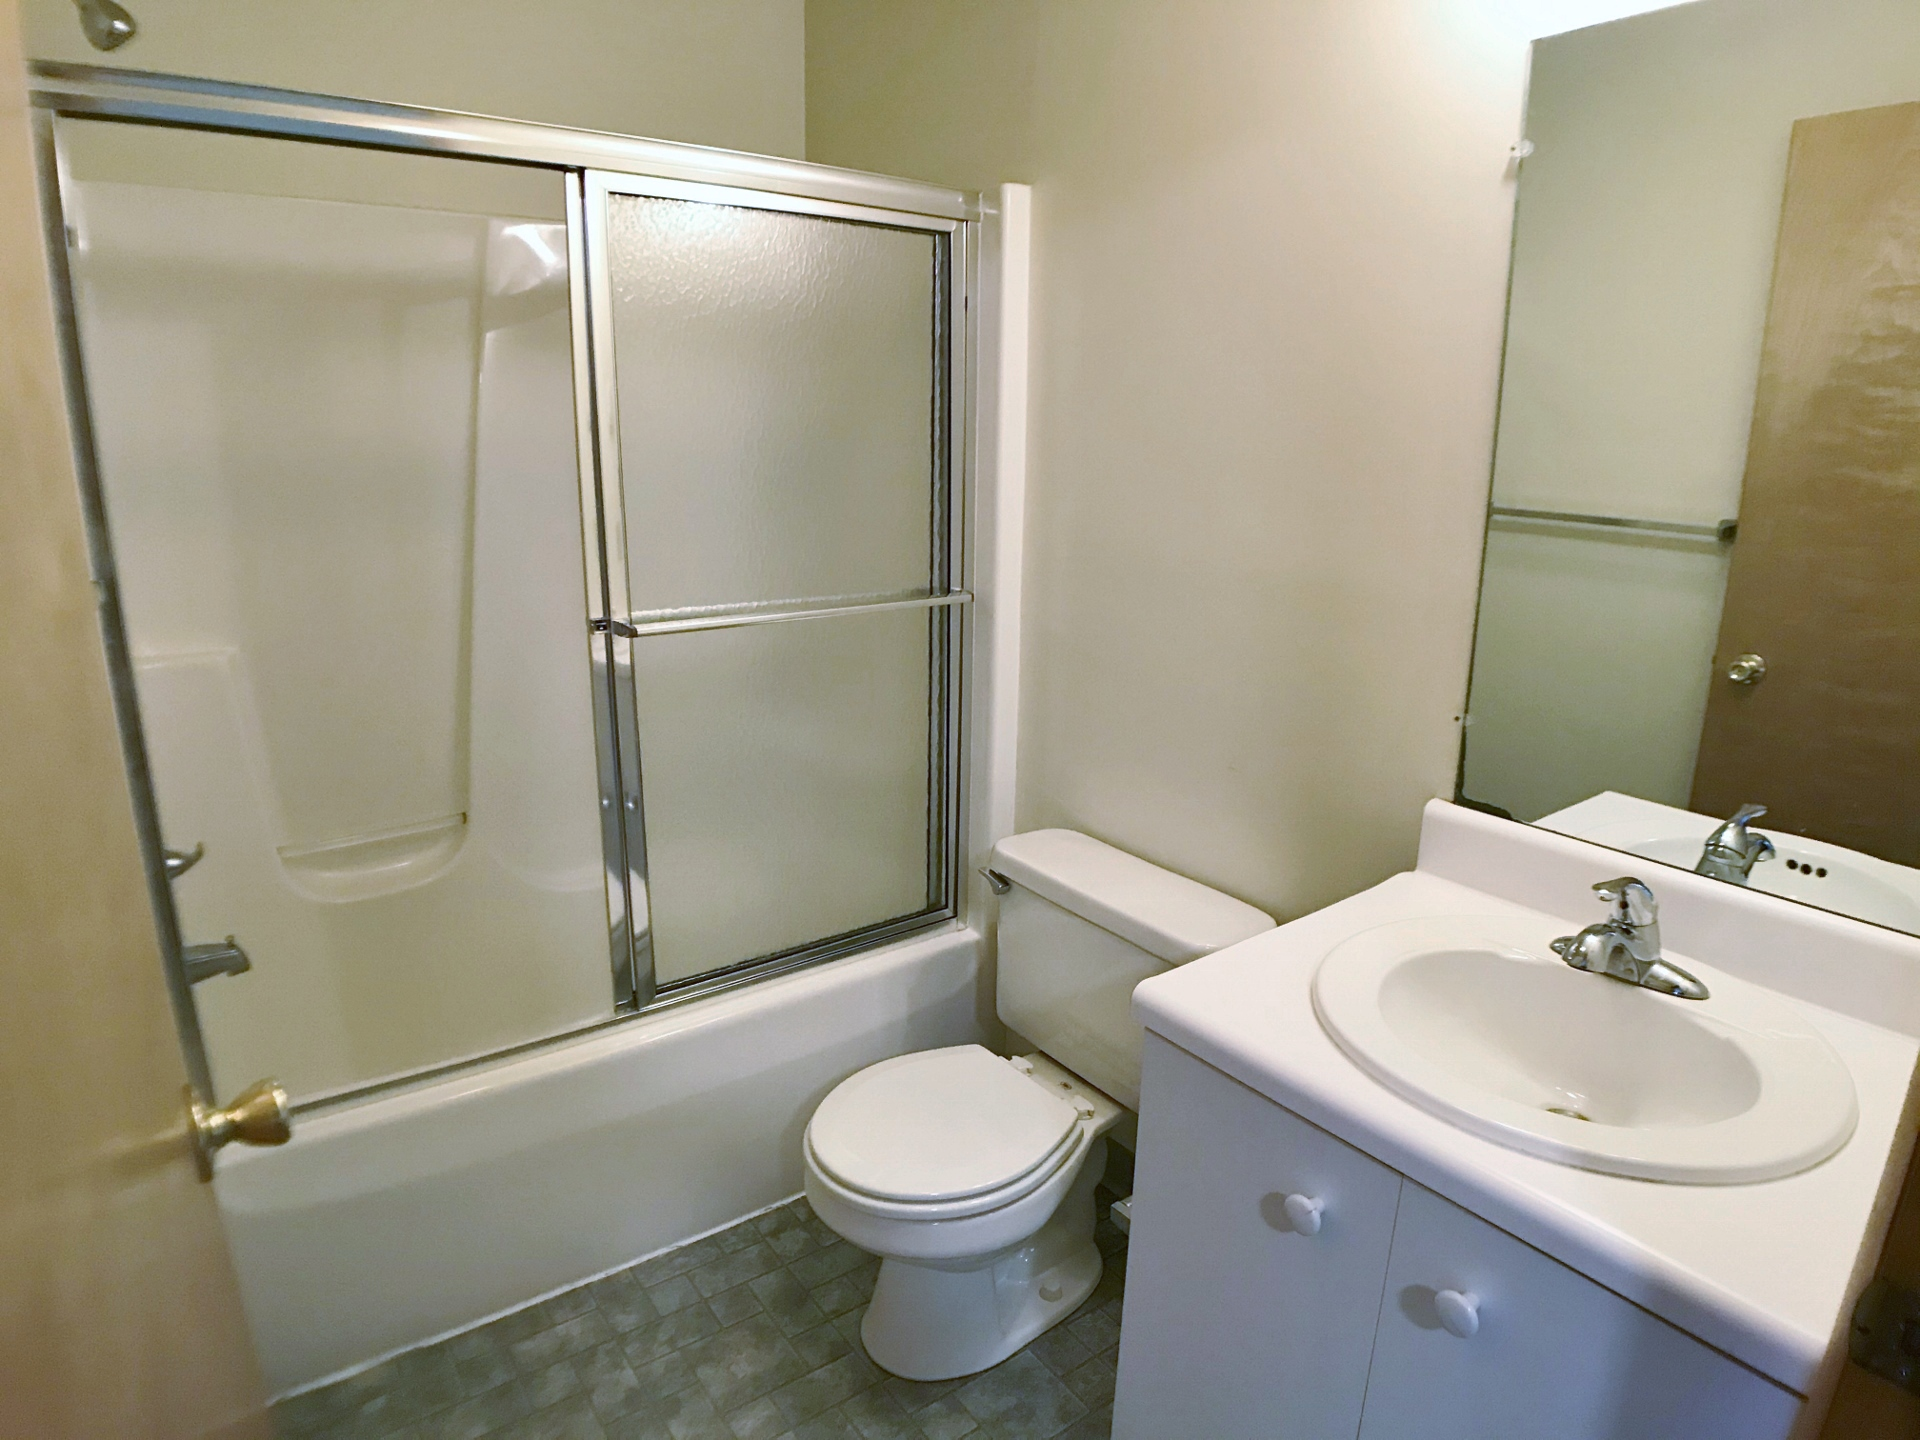 1960 Weaver Street #2 Bathroom 2